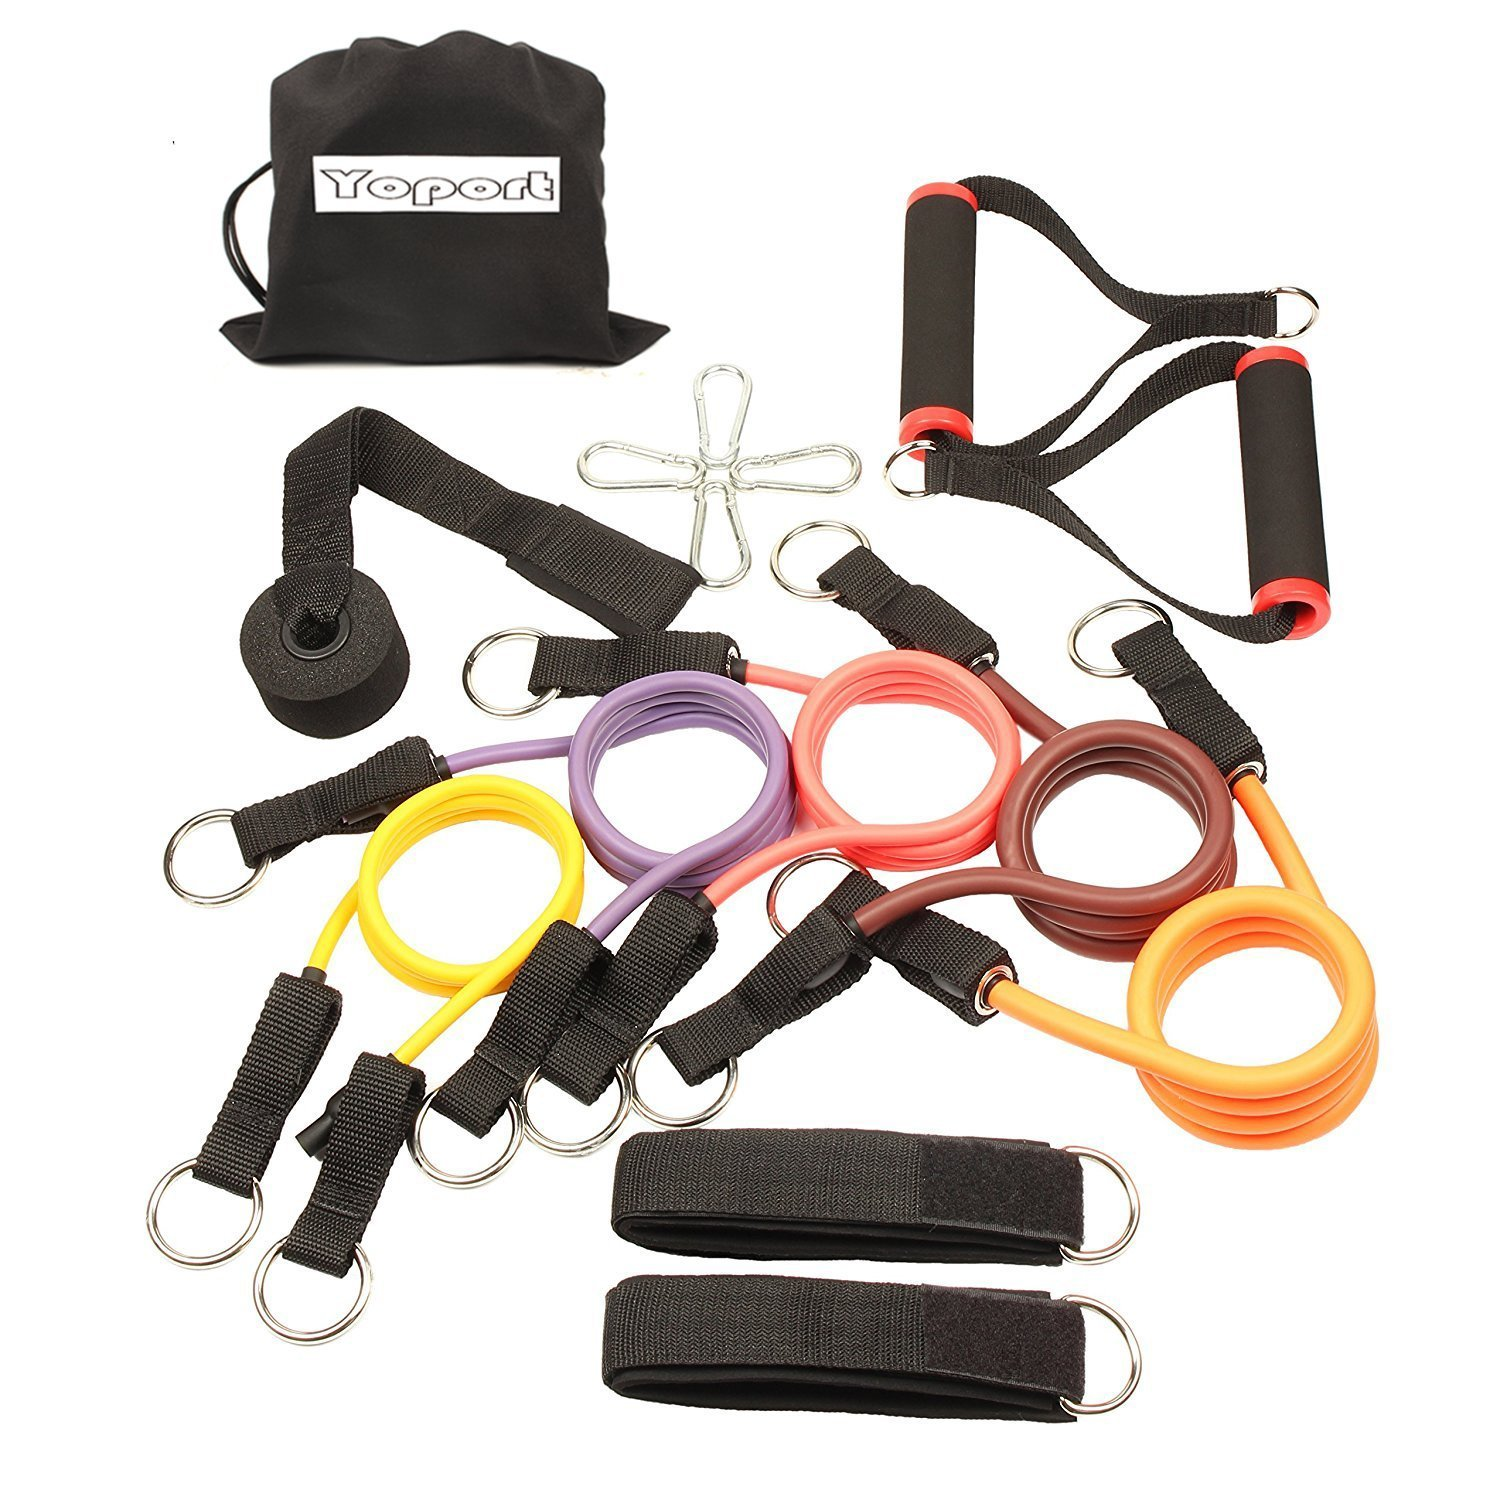 Yupro Exercise Resistance Band Set for Muscle Building , Exercise Resistance Training bands for Home Exercise ,GYM , Exercise Training Class ,Rehabilitative Exercises … Rehabilitative Exercises ... Yoport